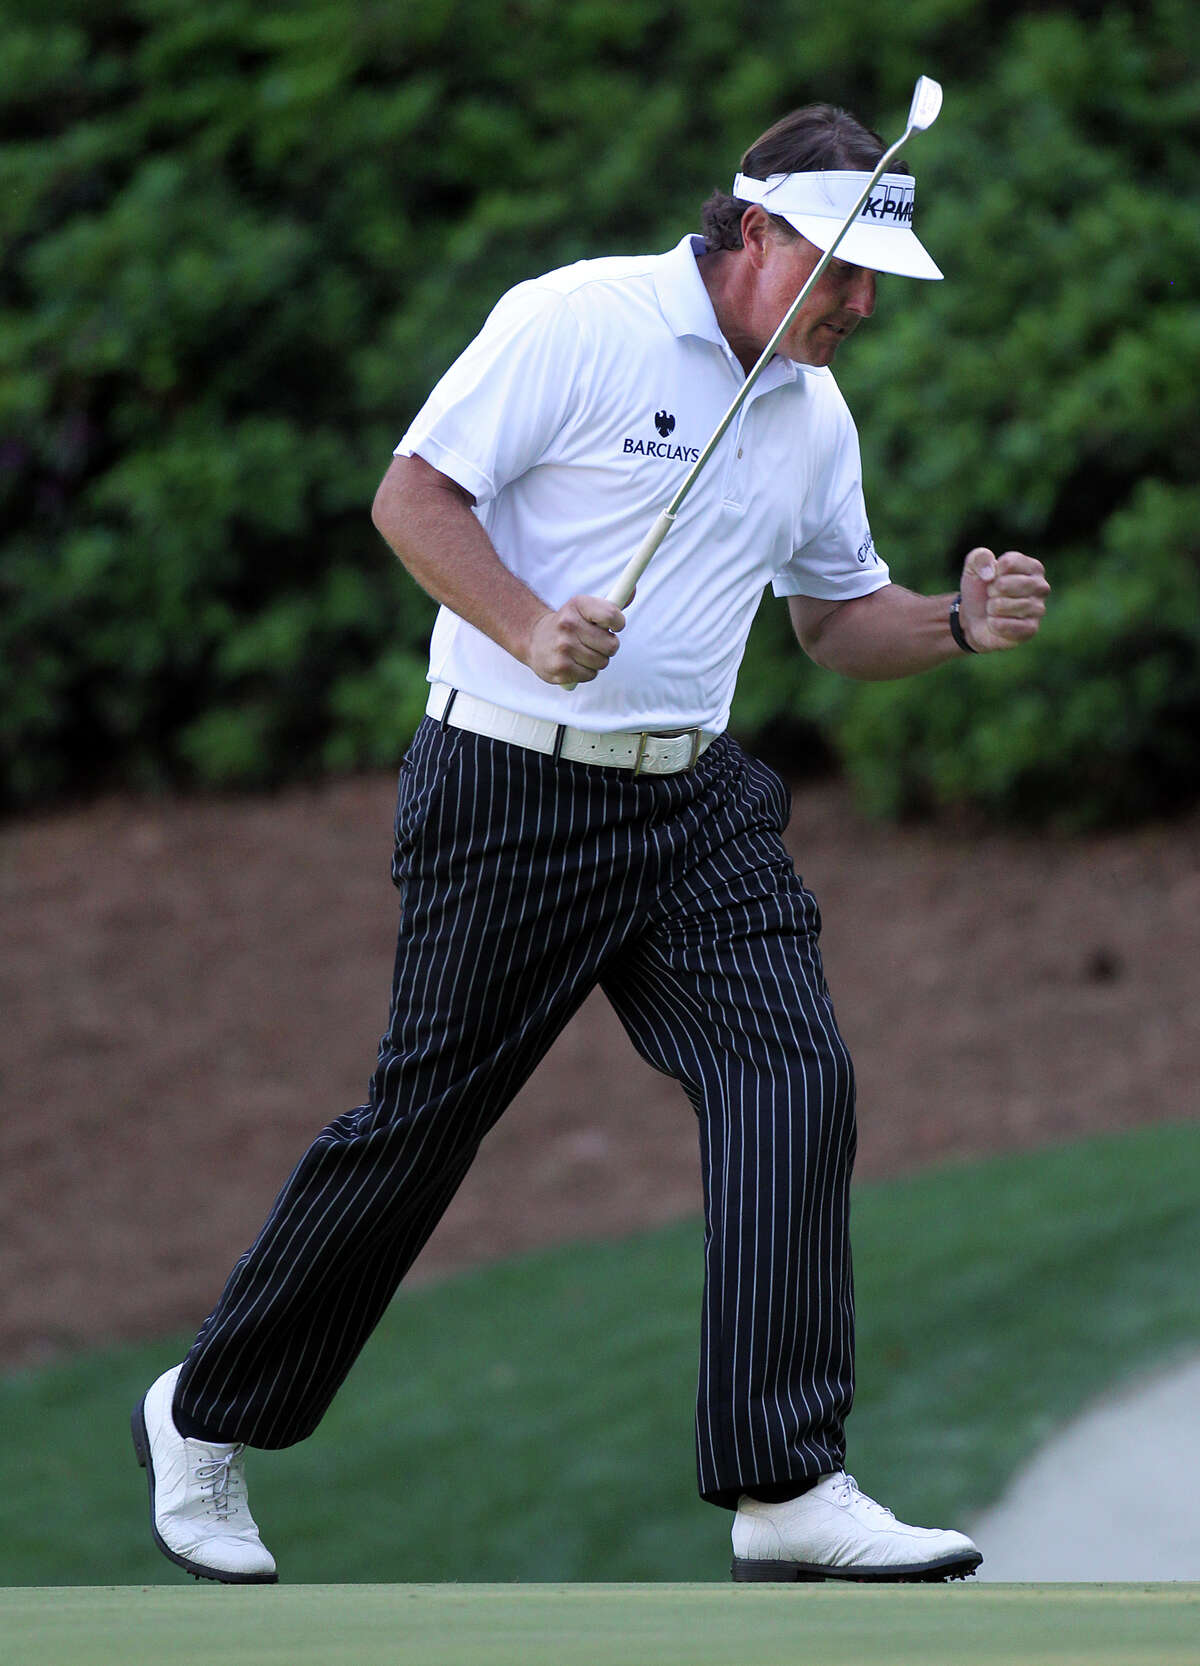 Phil Mickelson pumps his fist sinking a eagle putt on the 13th green during the third round of the Masters golf tournament at Augusta National Golf Club on Saturday, April 7, 2012, in Augusta, Ga (AP Photo/Atlanta Journal-Constitution, Curtis Compton) MARIETTA DAILY OUT; GWINNETT DAILY POST OUT